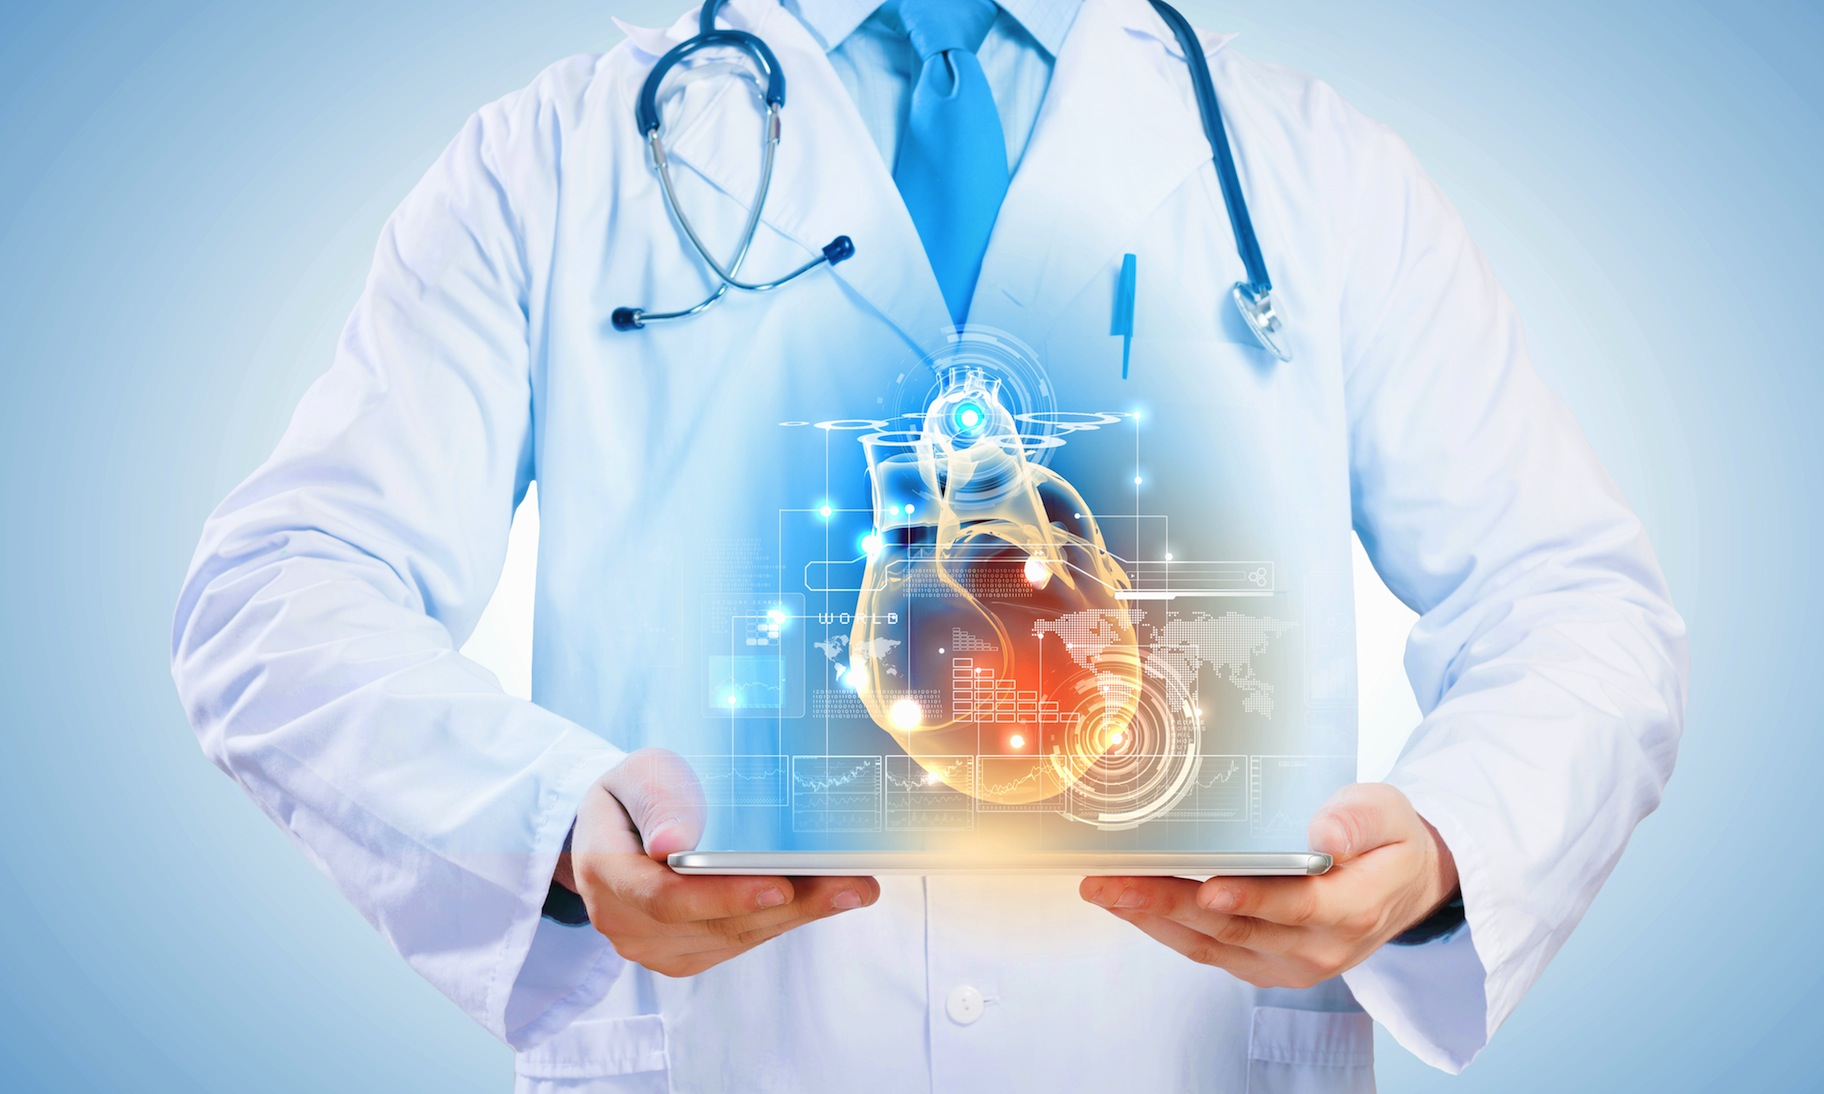 Make$125in 2 hrs! ConneXion Research is looking for participantswho have uncontrolled or controlled High Blood Pressure, High Cholesterol and High Blood Sugarto participate in a Health Care StudyinHouston, TX!